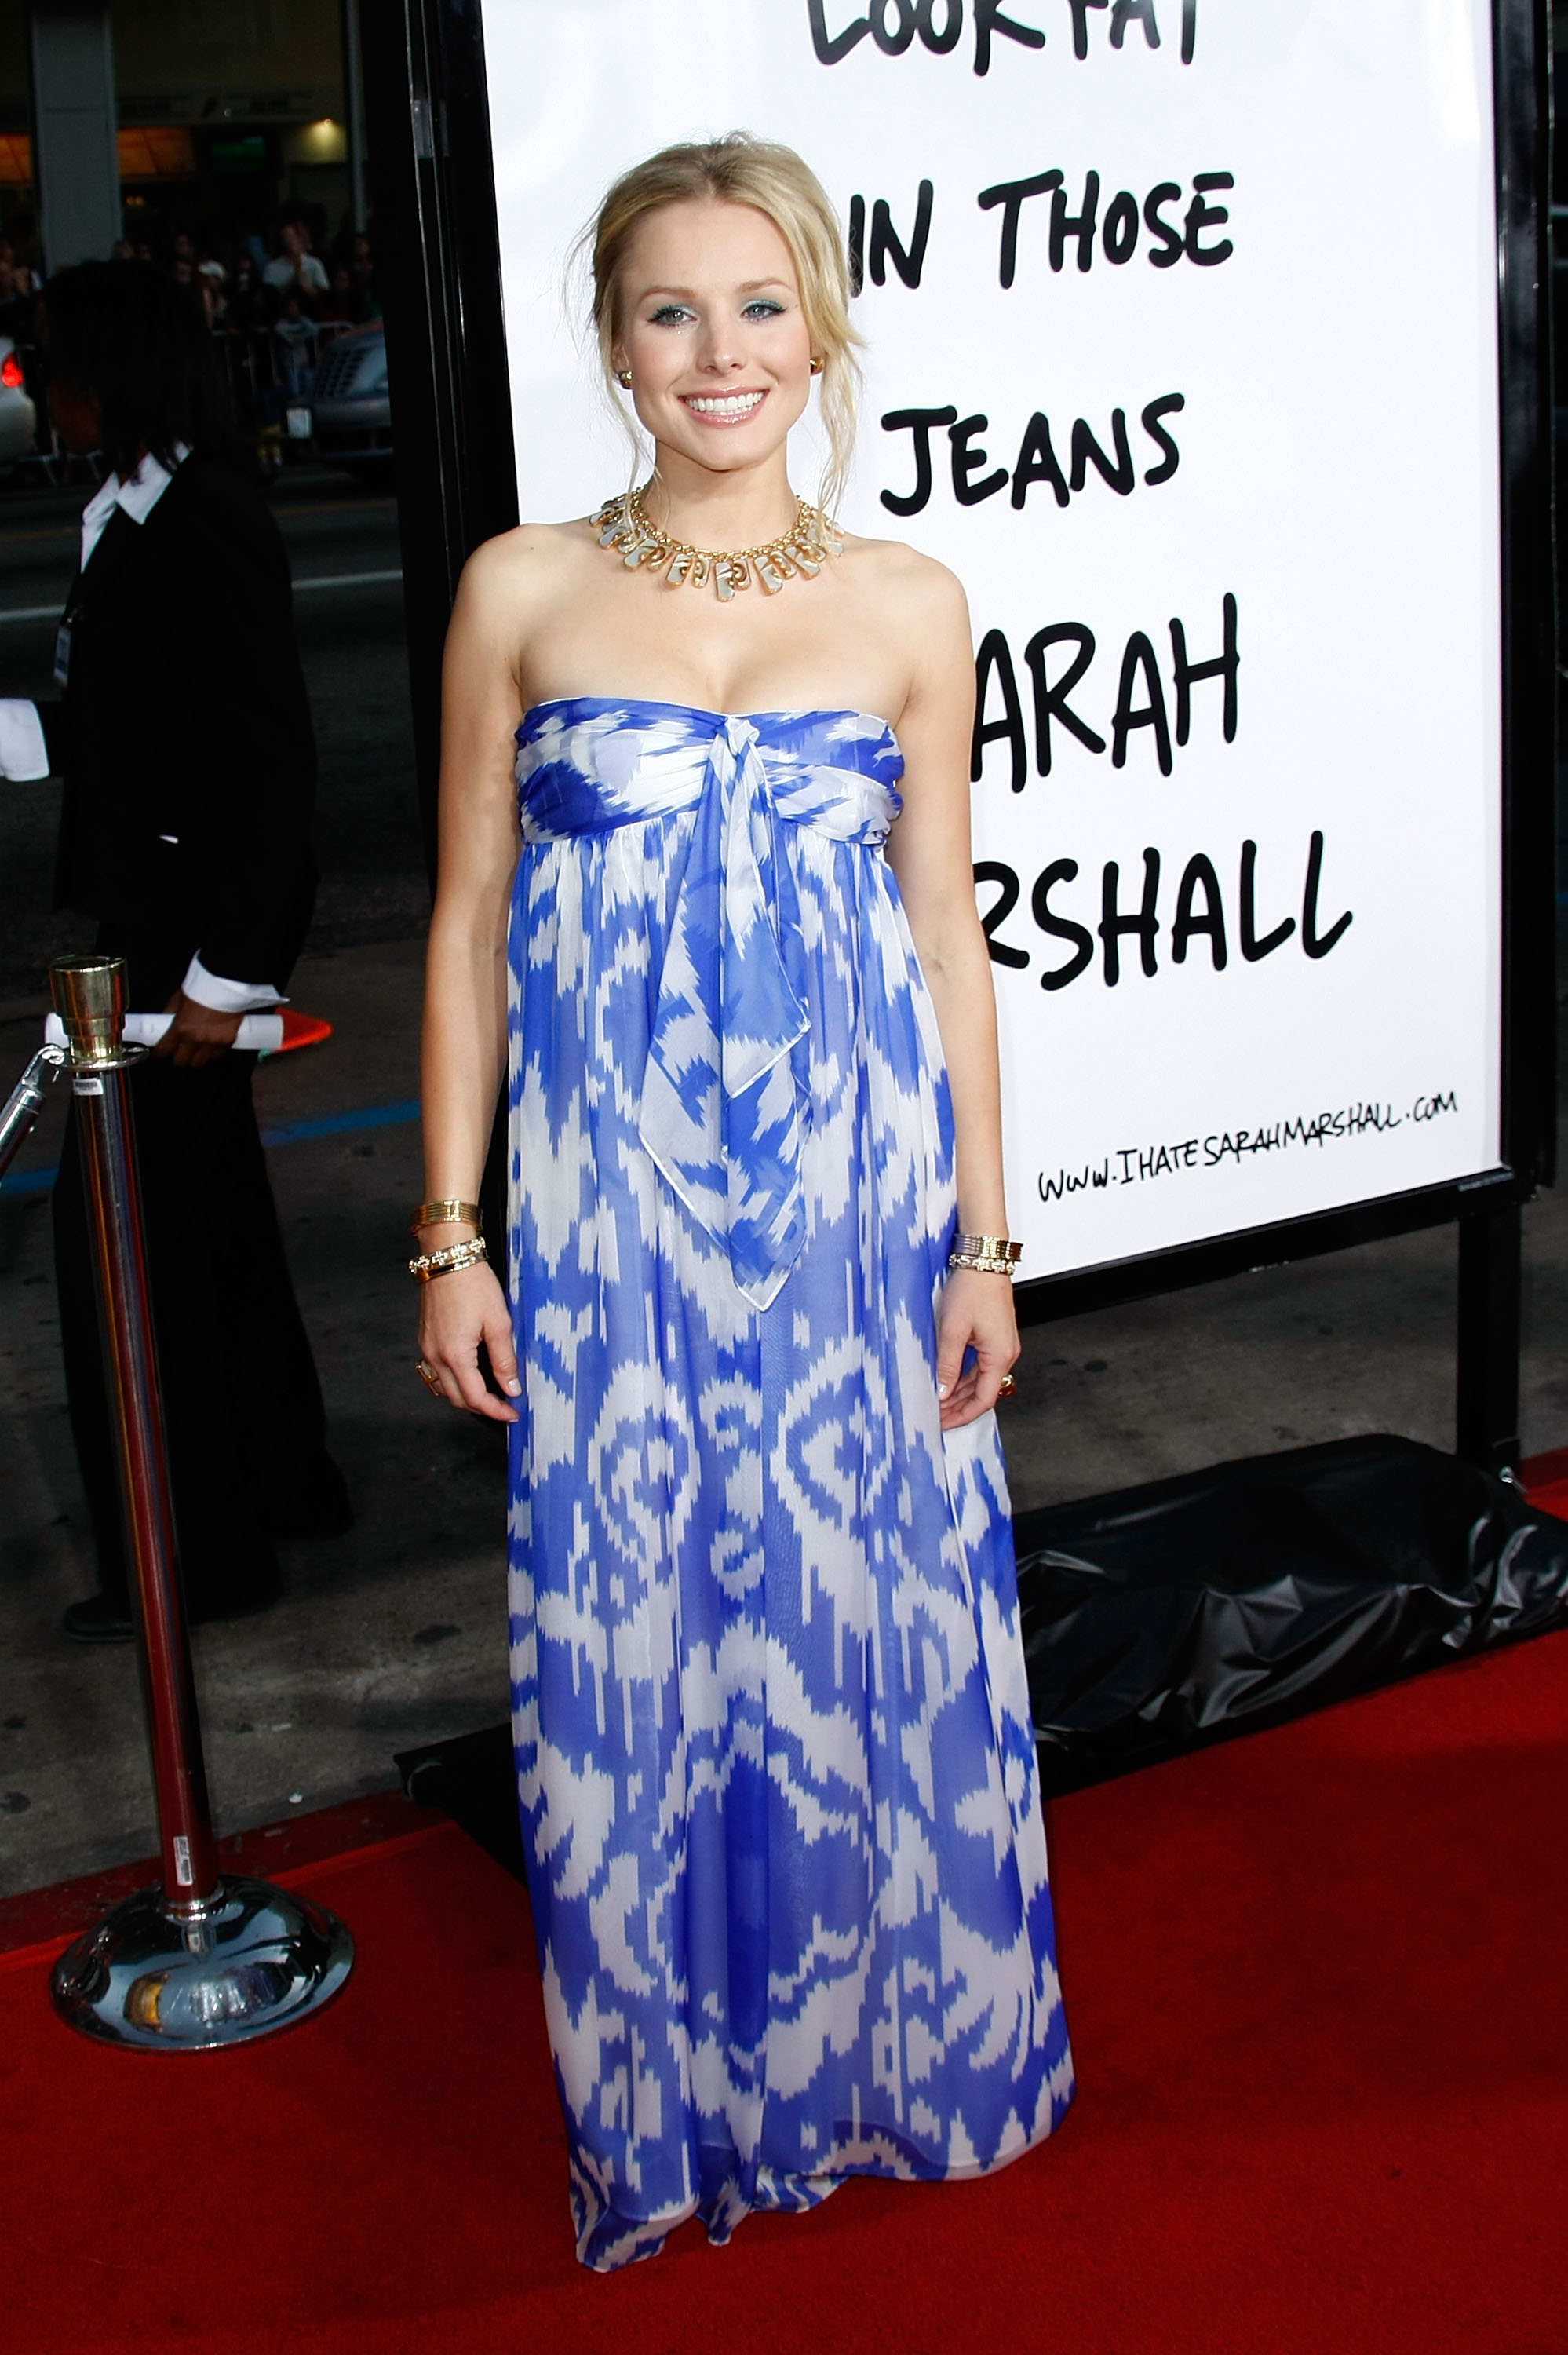 95054_Kristen_Bell-Forgetting_Sarah_Marshall_premiere_in_Hollywood_095_122_658lo.jpg